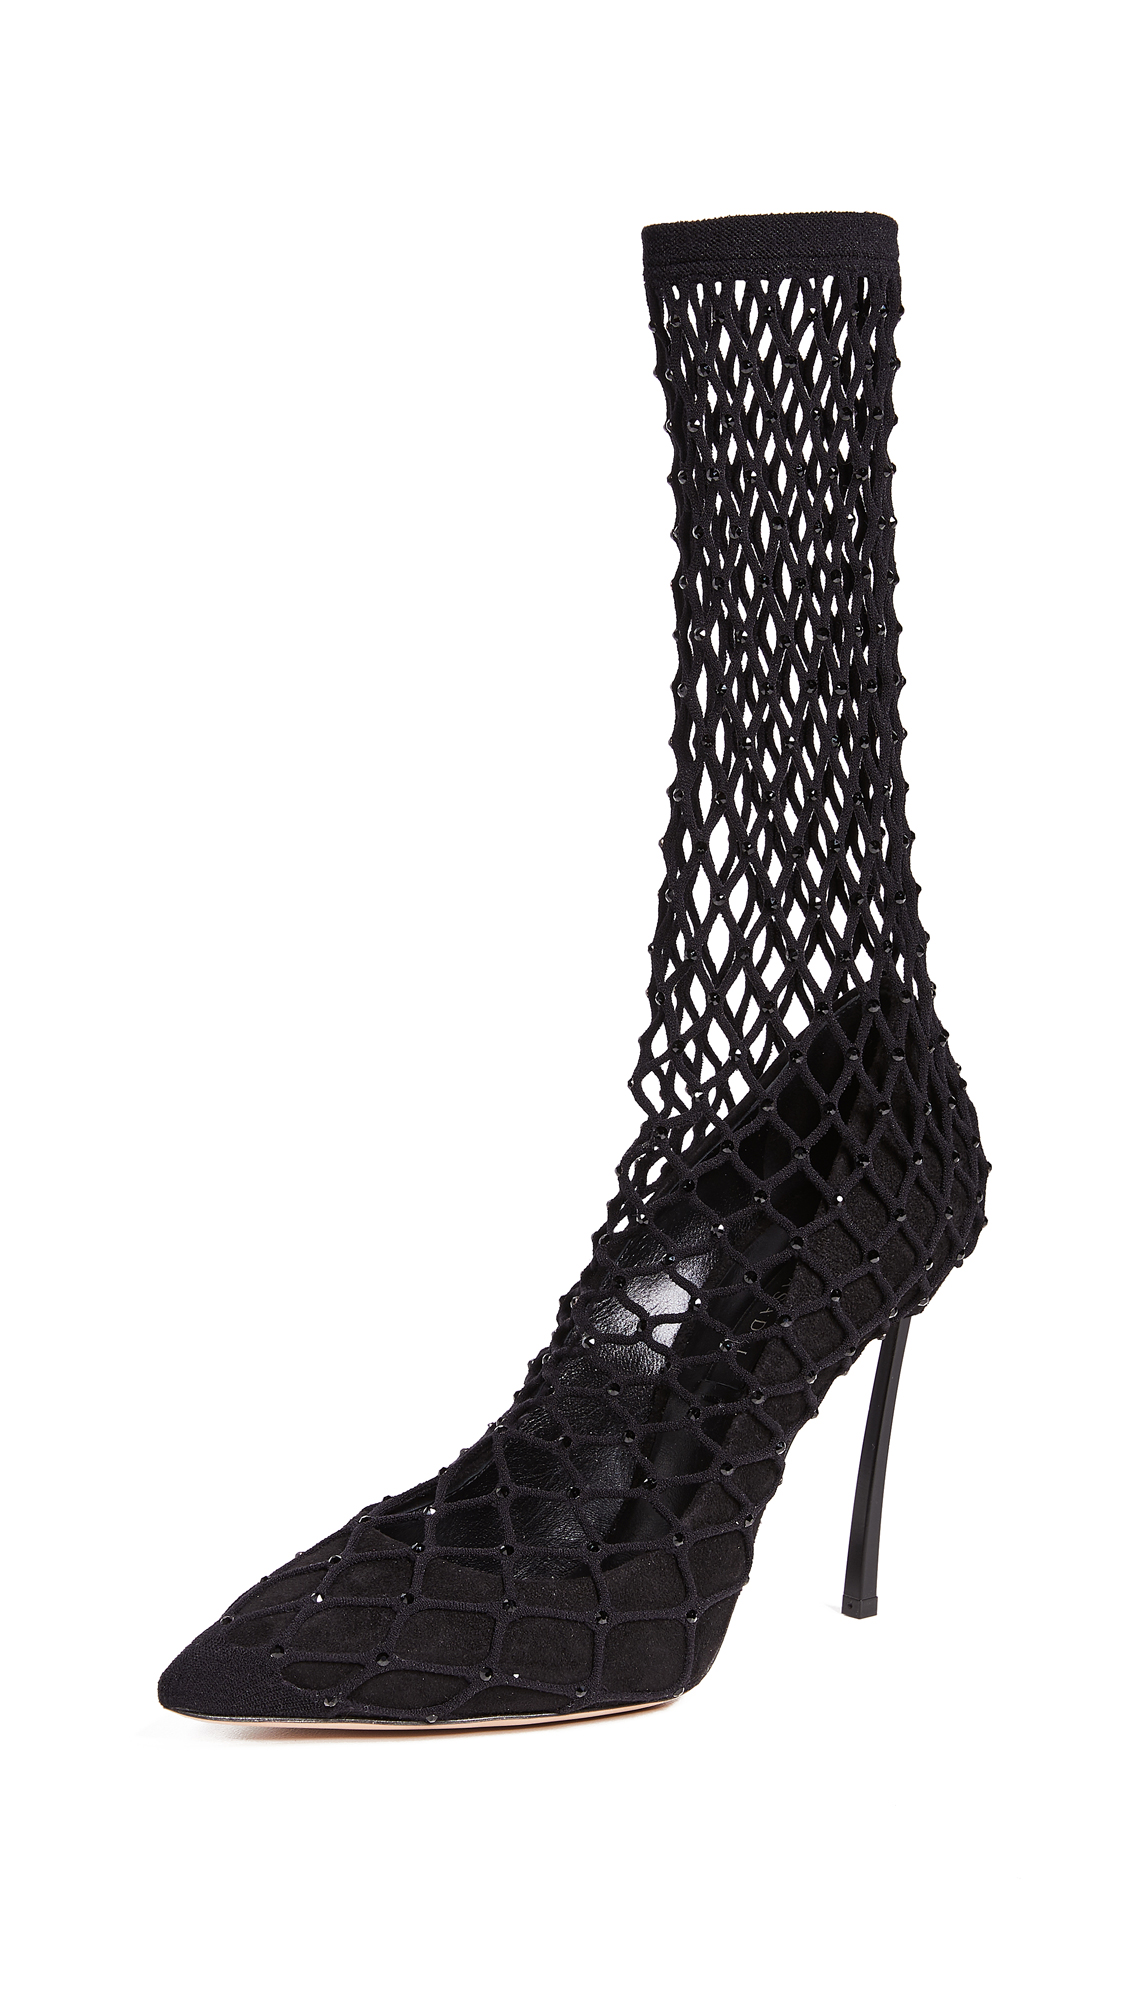 Casadei Spidergirl Pumps